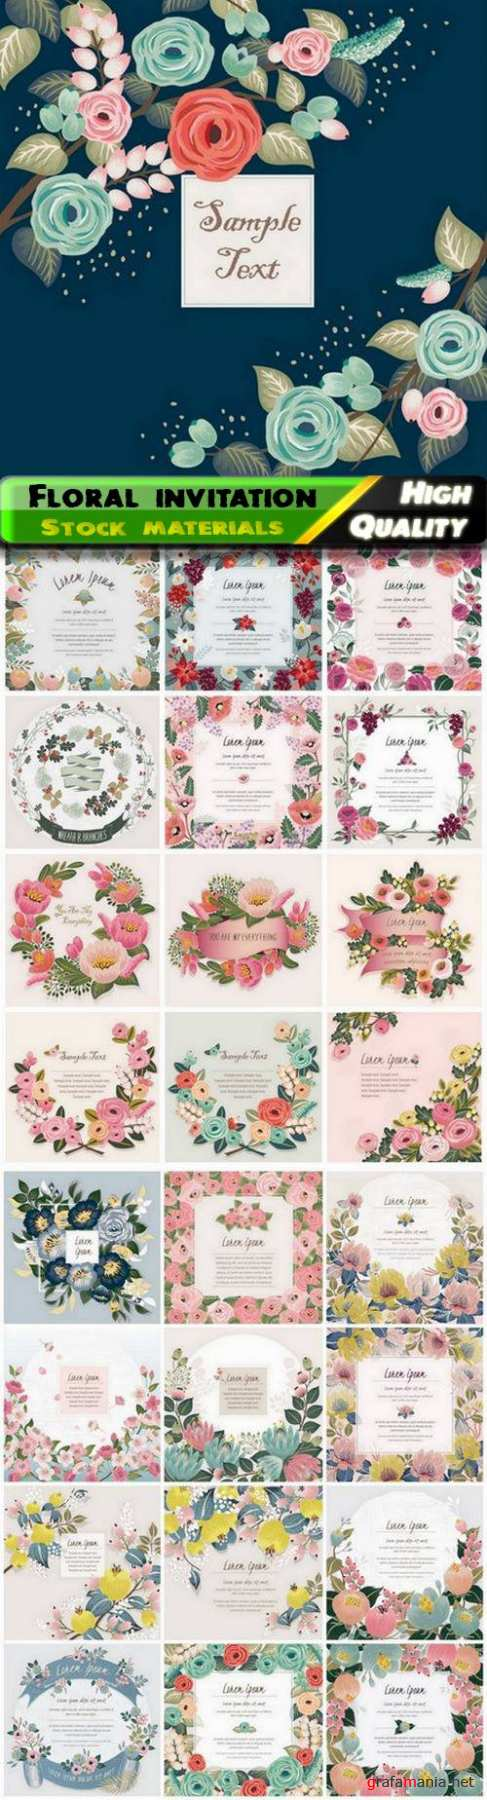 Floral wedding invitation card with wild flowers and leaves 25 Eps